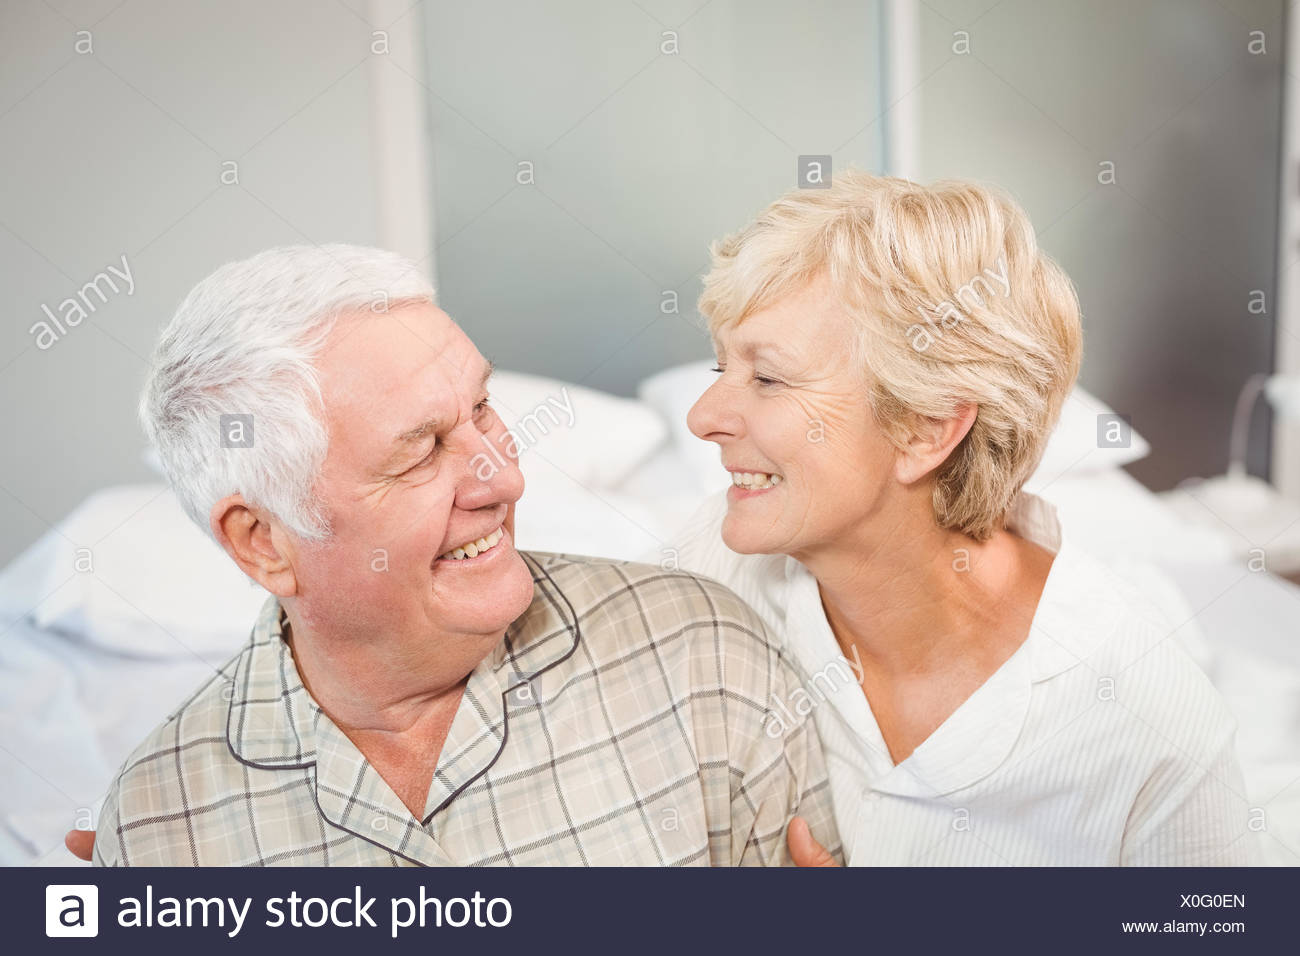 High angle view of happy senior couple in nightwear - Stock Image